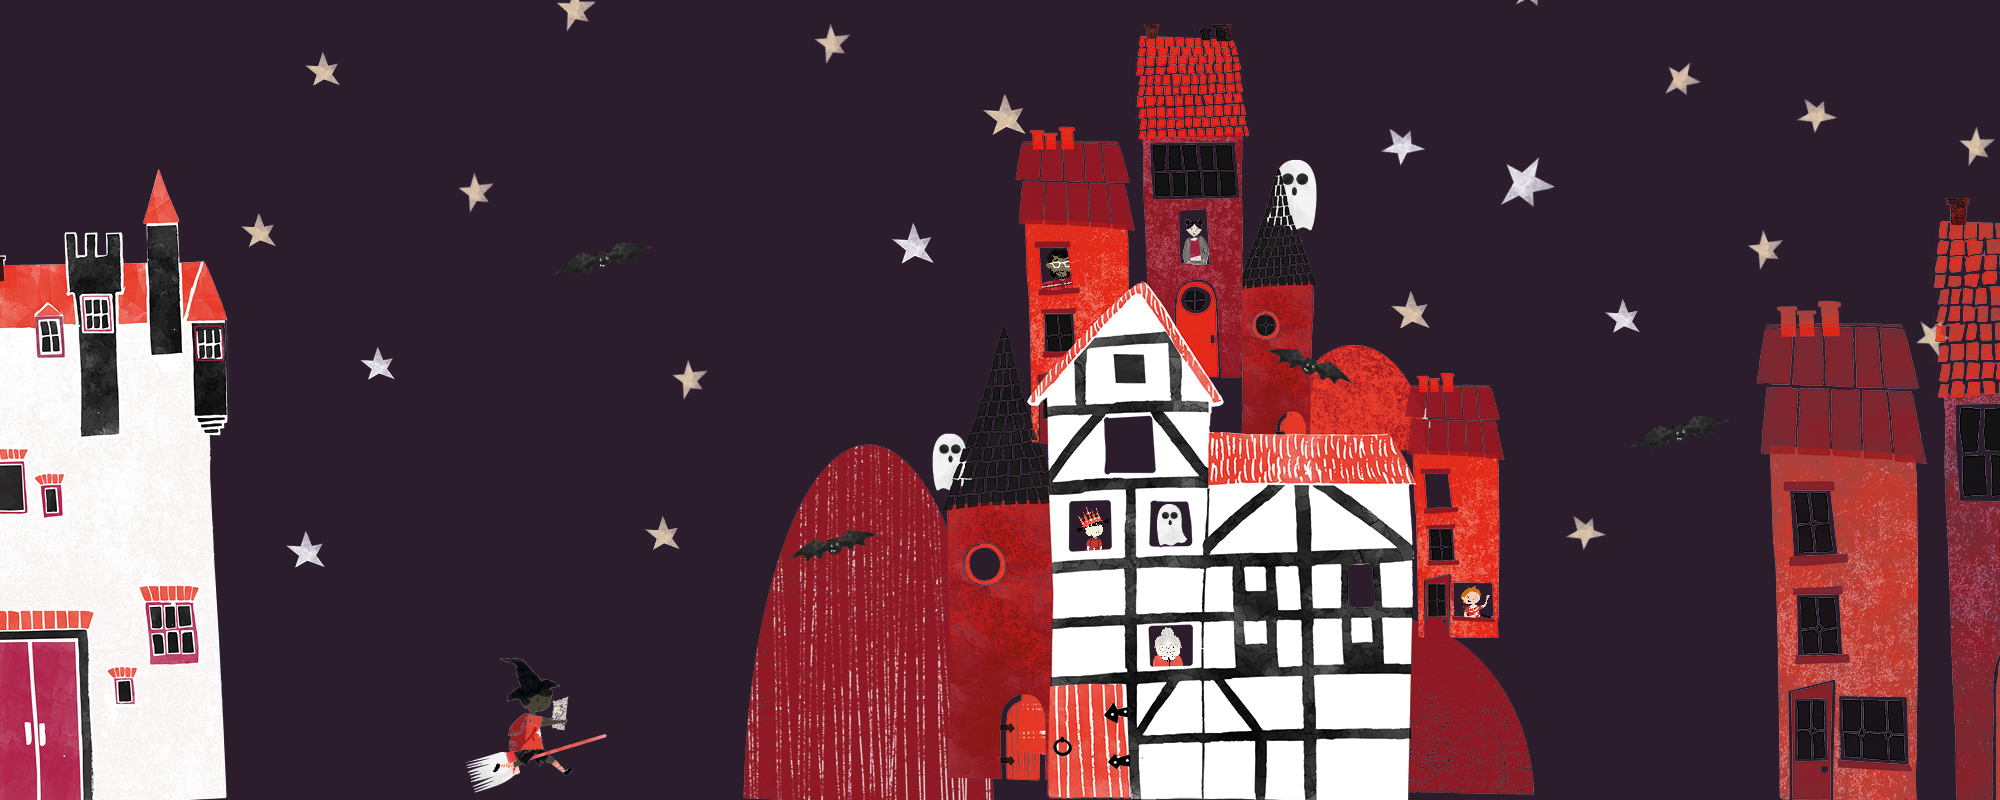 Cartoon of a house with ghost, stars, bats and witches